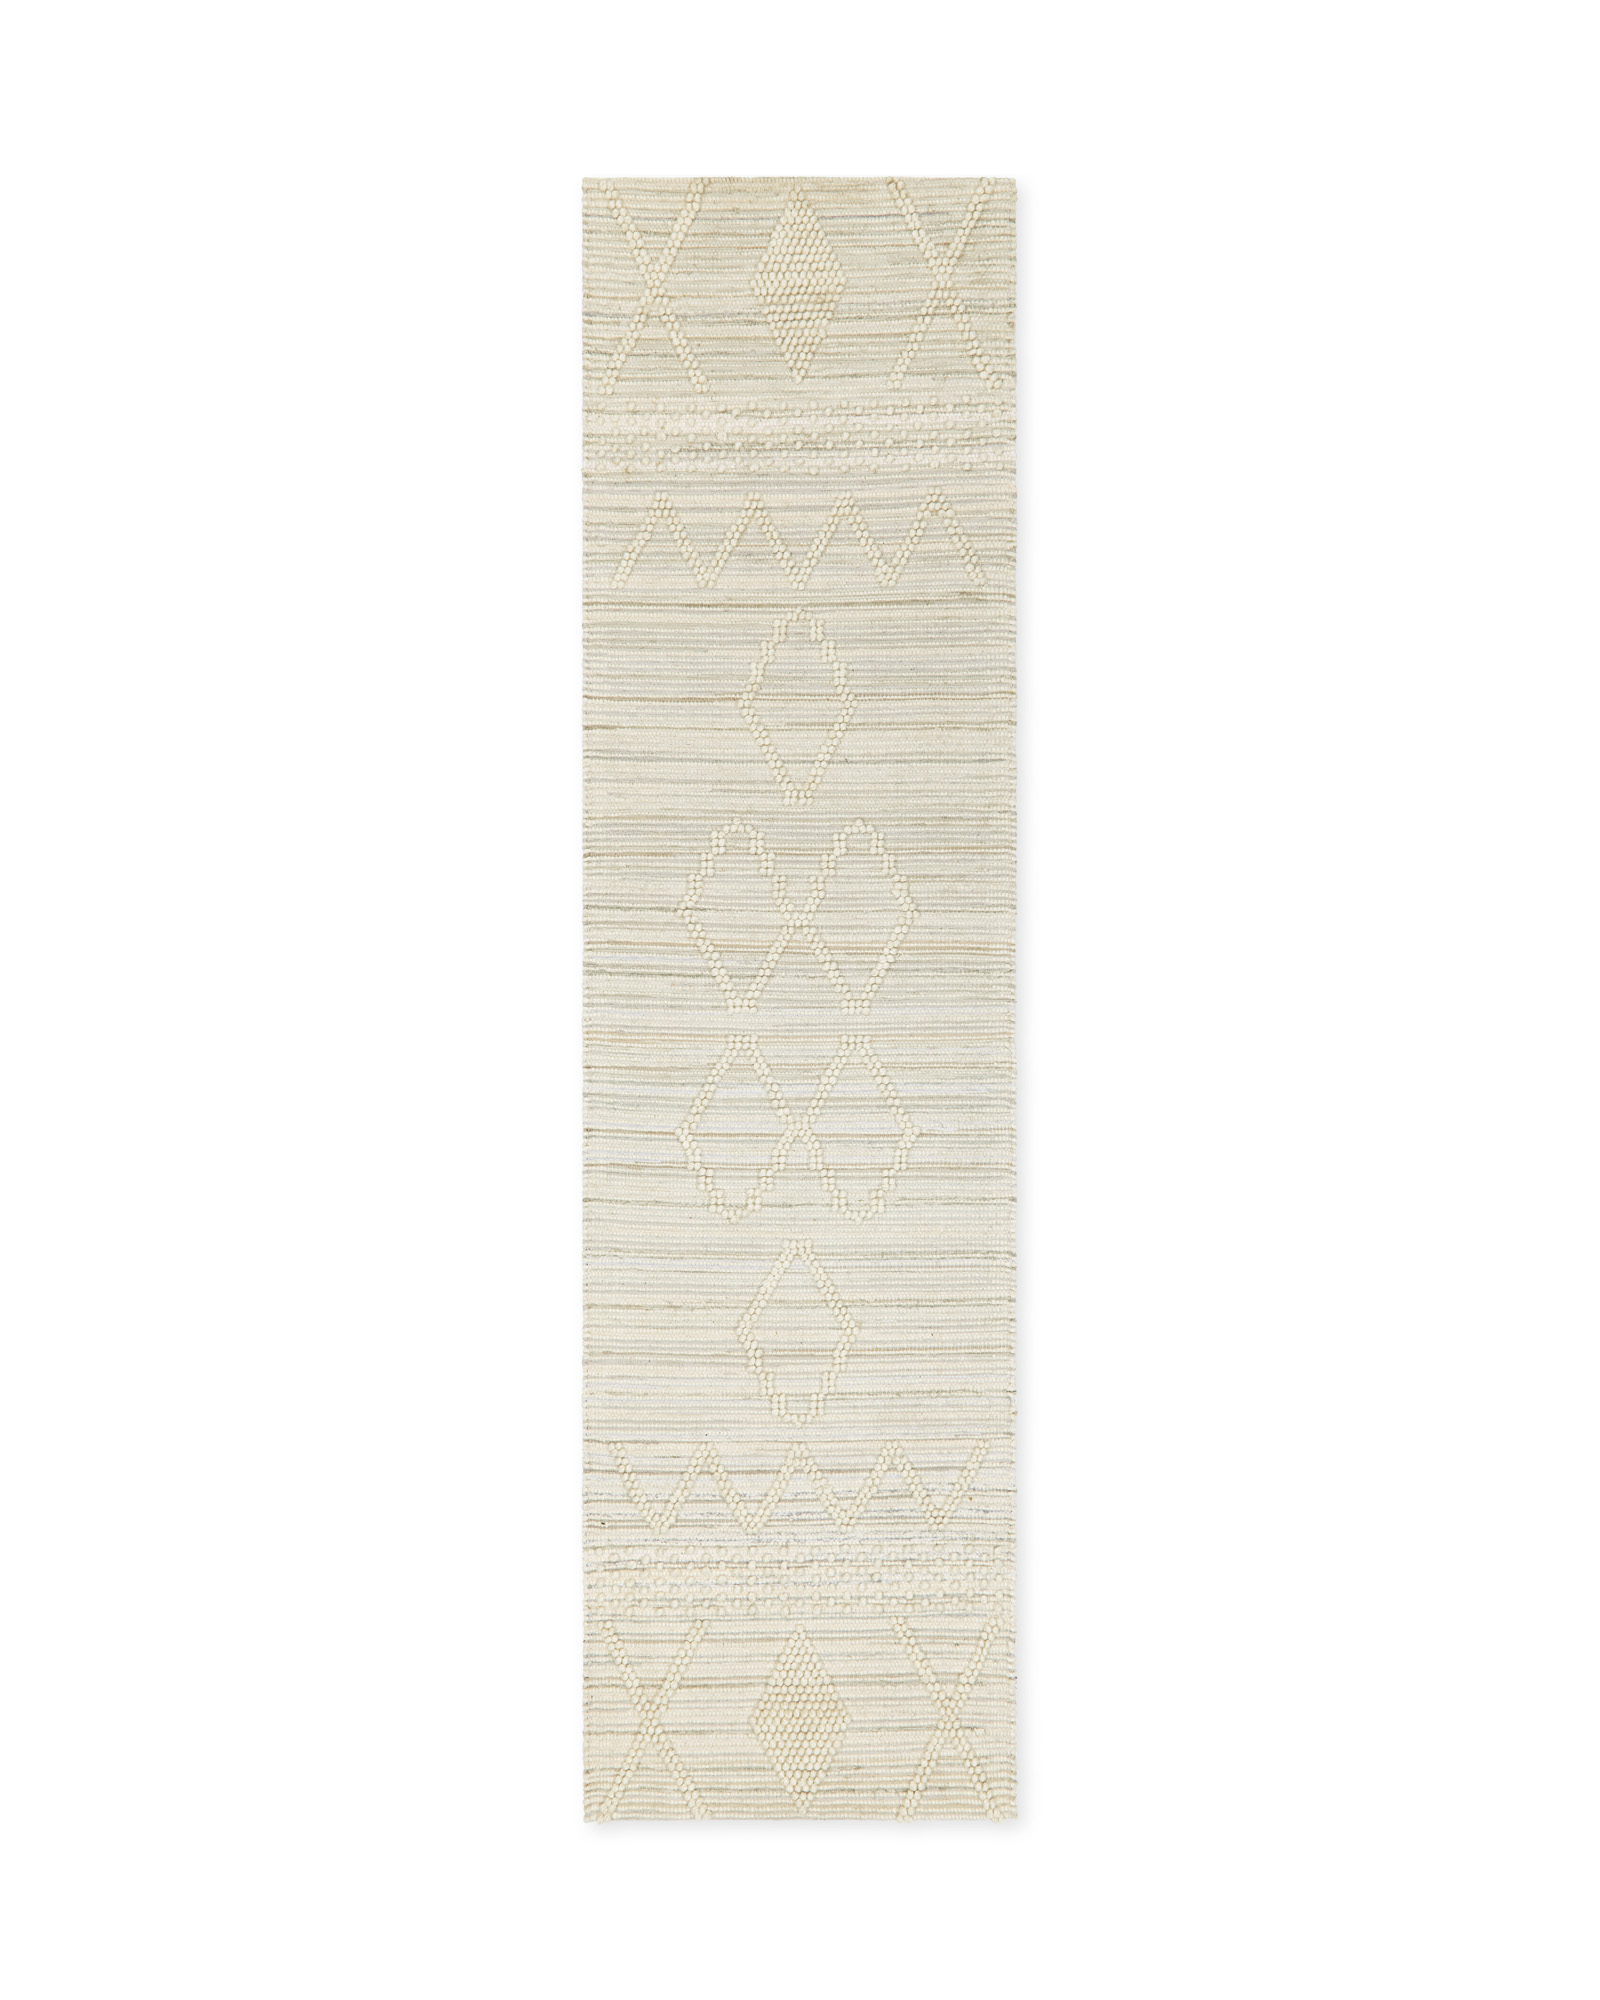 Ryder Denim Rug, Natural